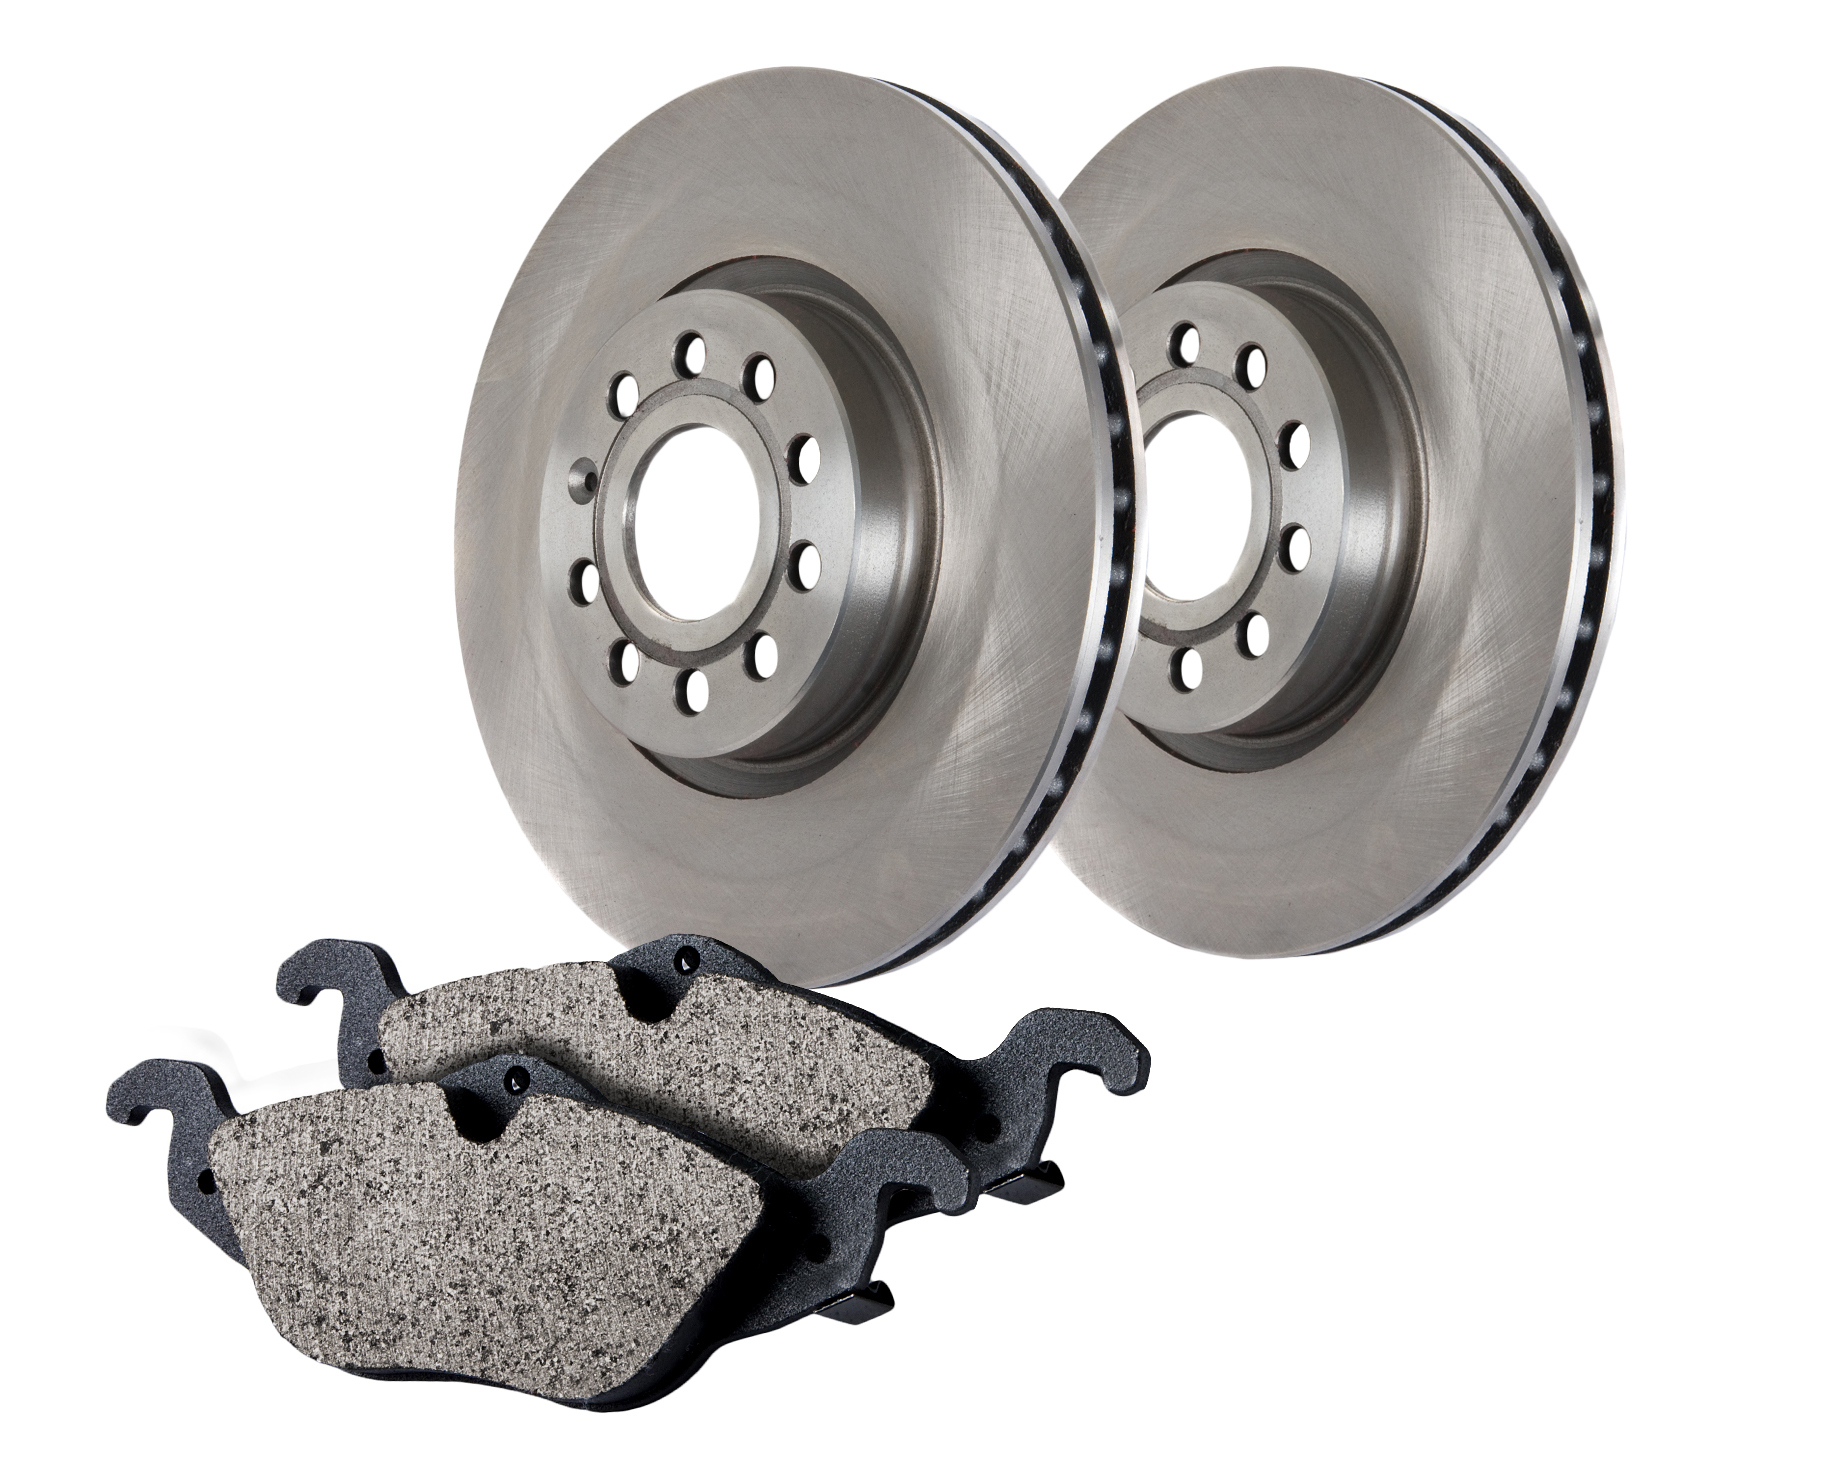 Centric Brake Parts 905.67022 Brake Rotor and Pad Kit, Premium, Semi-Metallic Pads, Iron, Natural, Jeep Liberty 2003-07, Kit